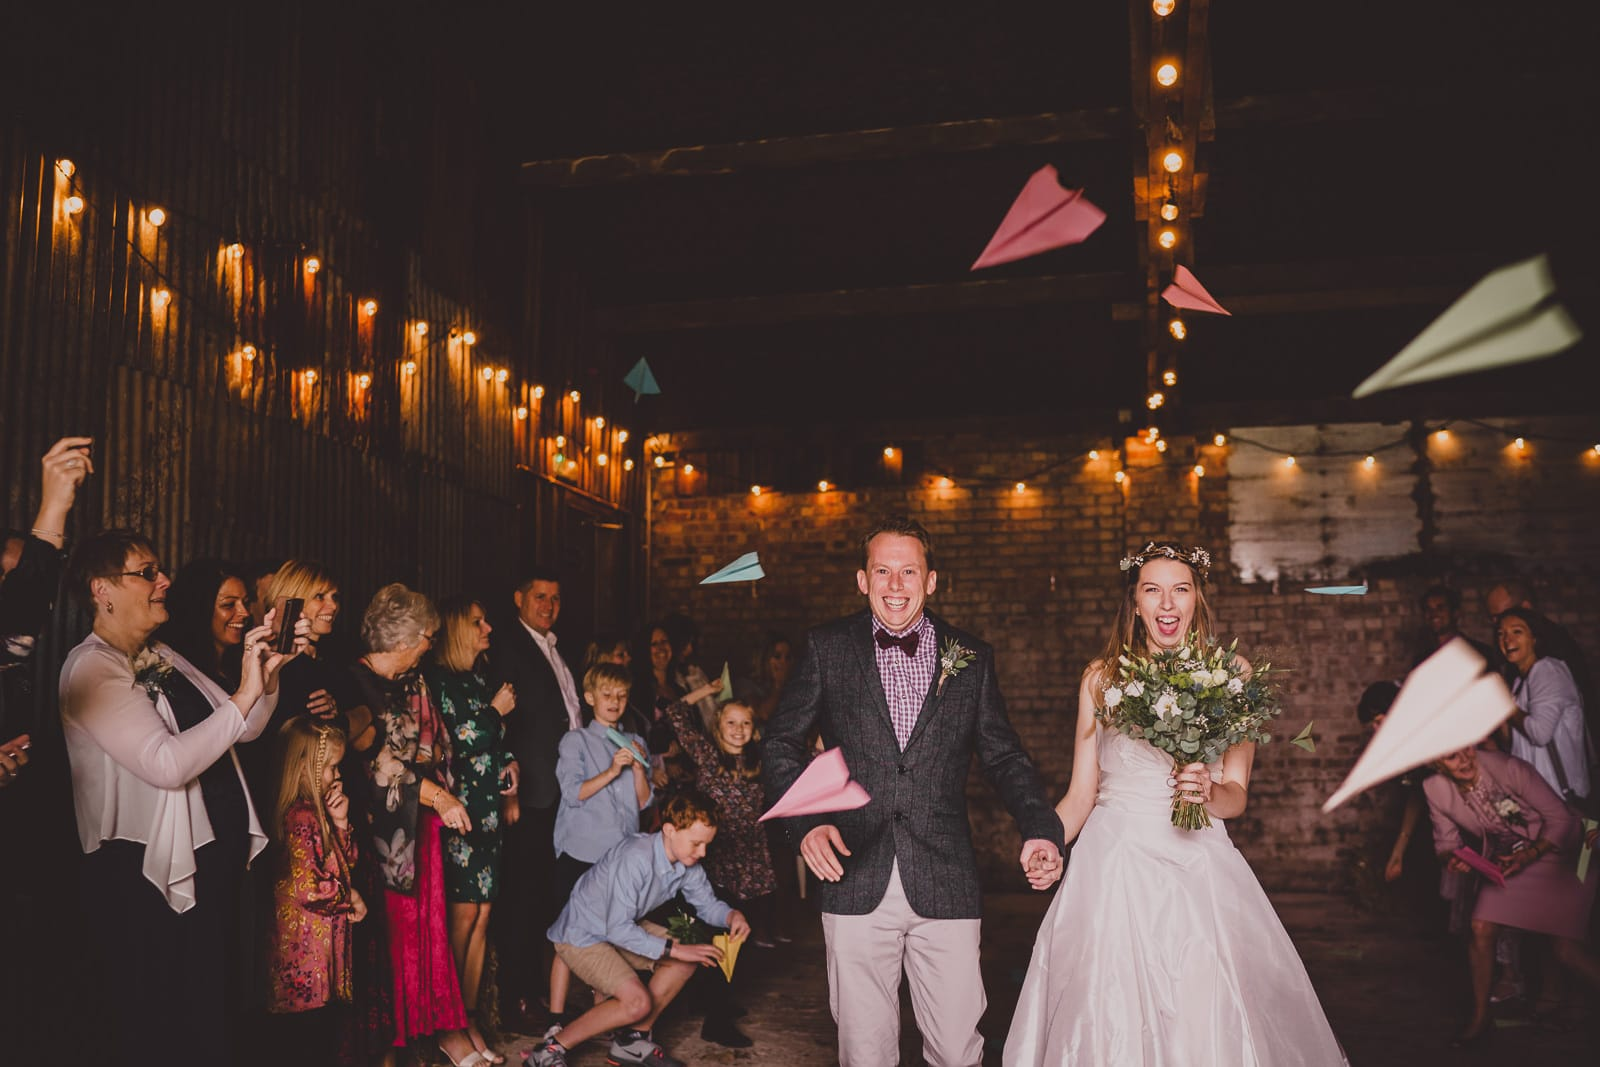 Wedding confetti (paper aeroplanes) in the Really Rustic Barn at The Green.